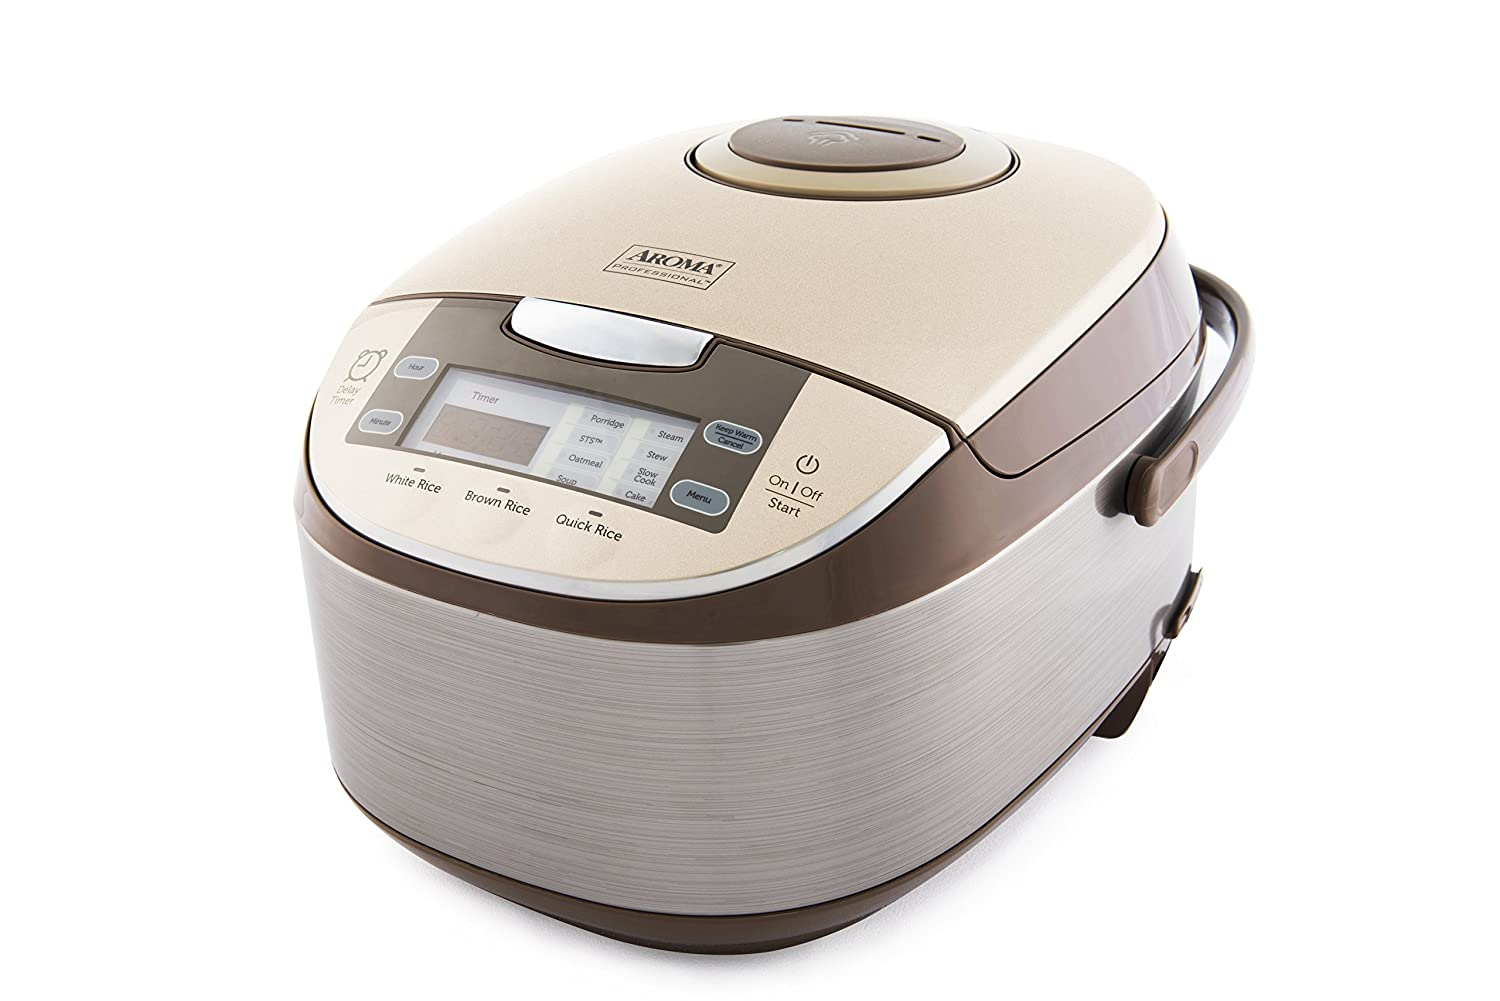 Aroma Housewares ARC-6106 Aroma Professional 6 Cups Uncooked Rice, Slow Cooker, Food Steamer, MultiCooker, 12, Silver